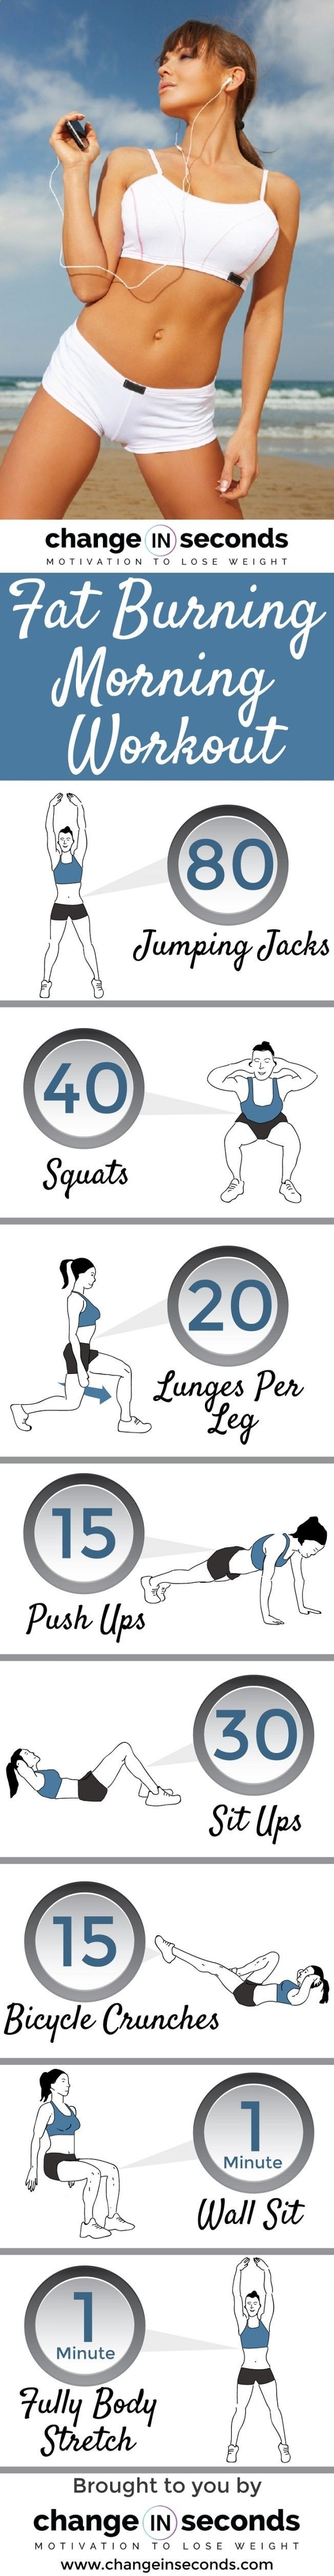 Fat Burning Morning Workout www.changeinsecon...